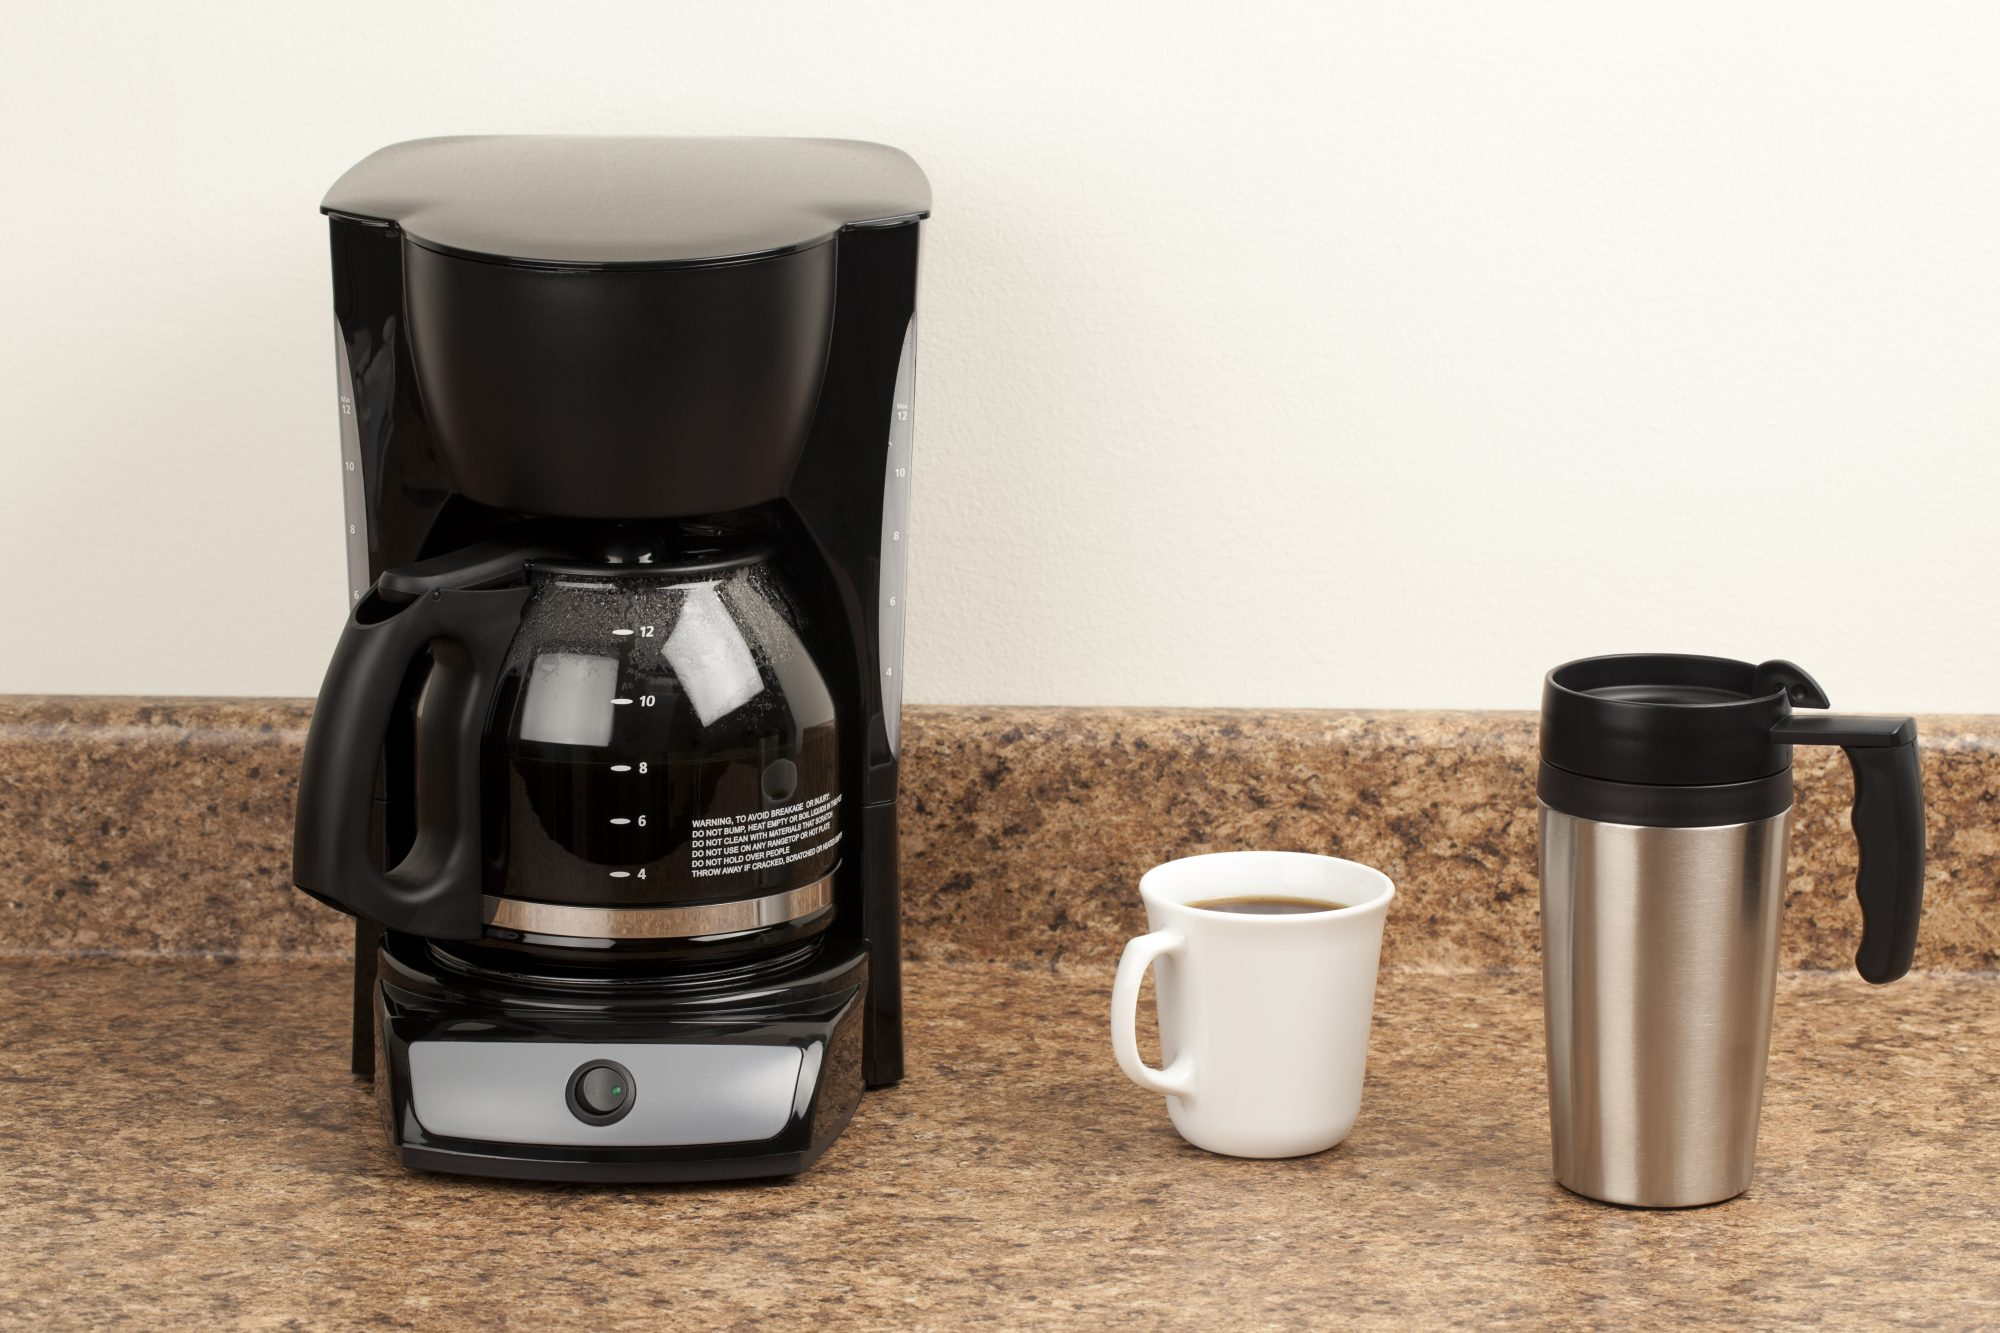 getty-coffee-maker-image